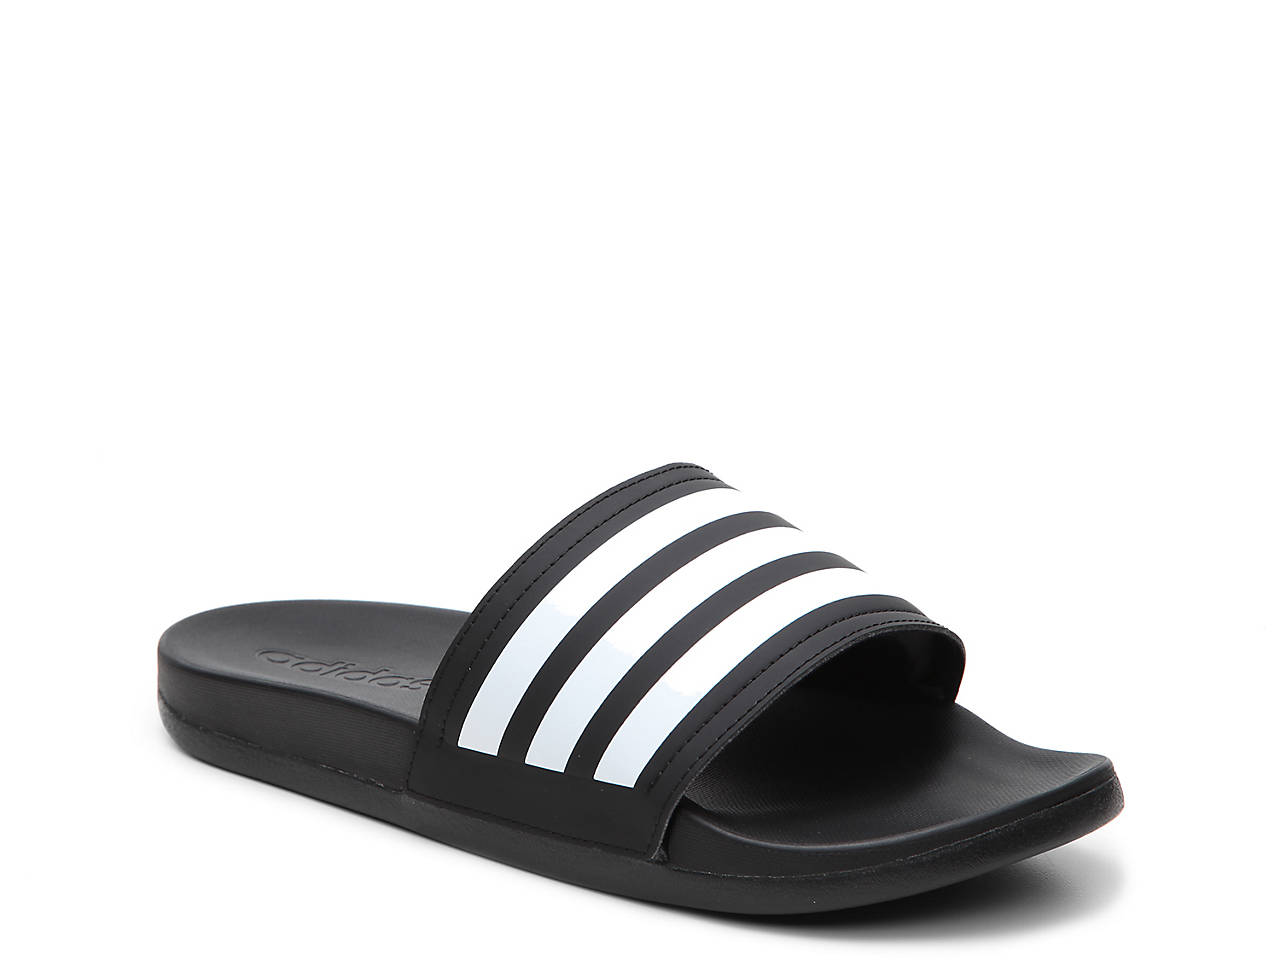 3623f2421 adidas Adilette Cloudfoam Ultra Stripes Slide Sandal - Women s ...